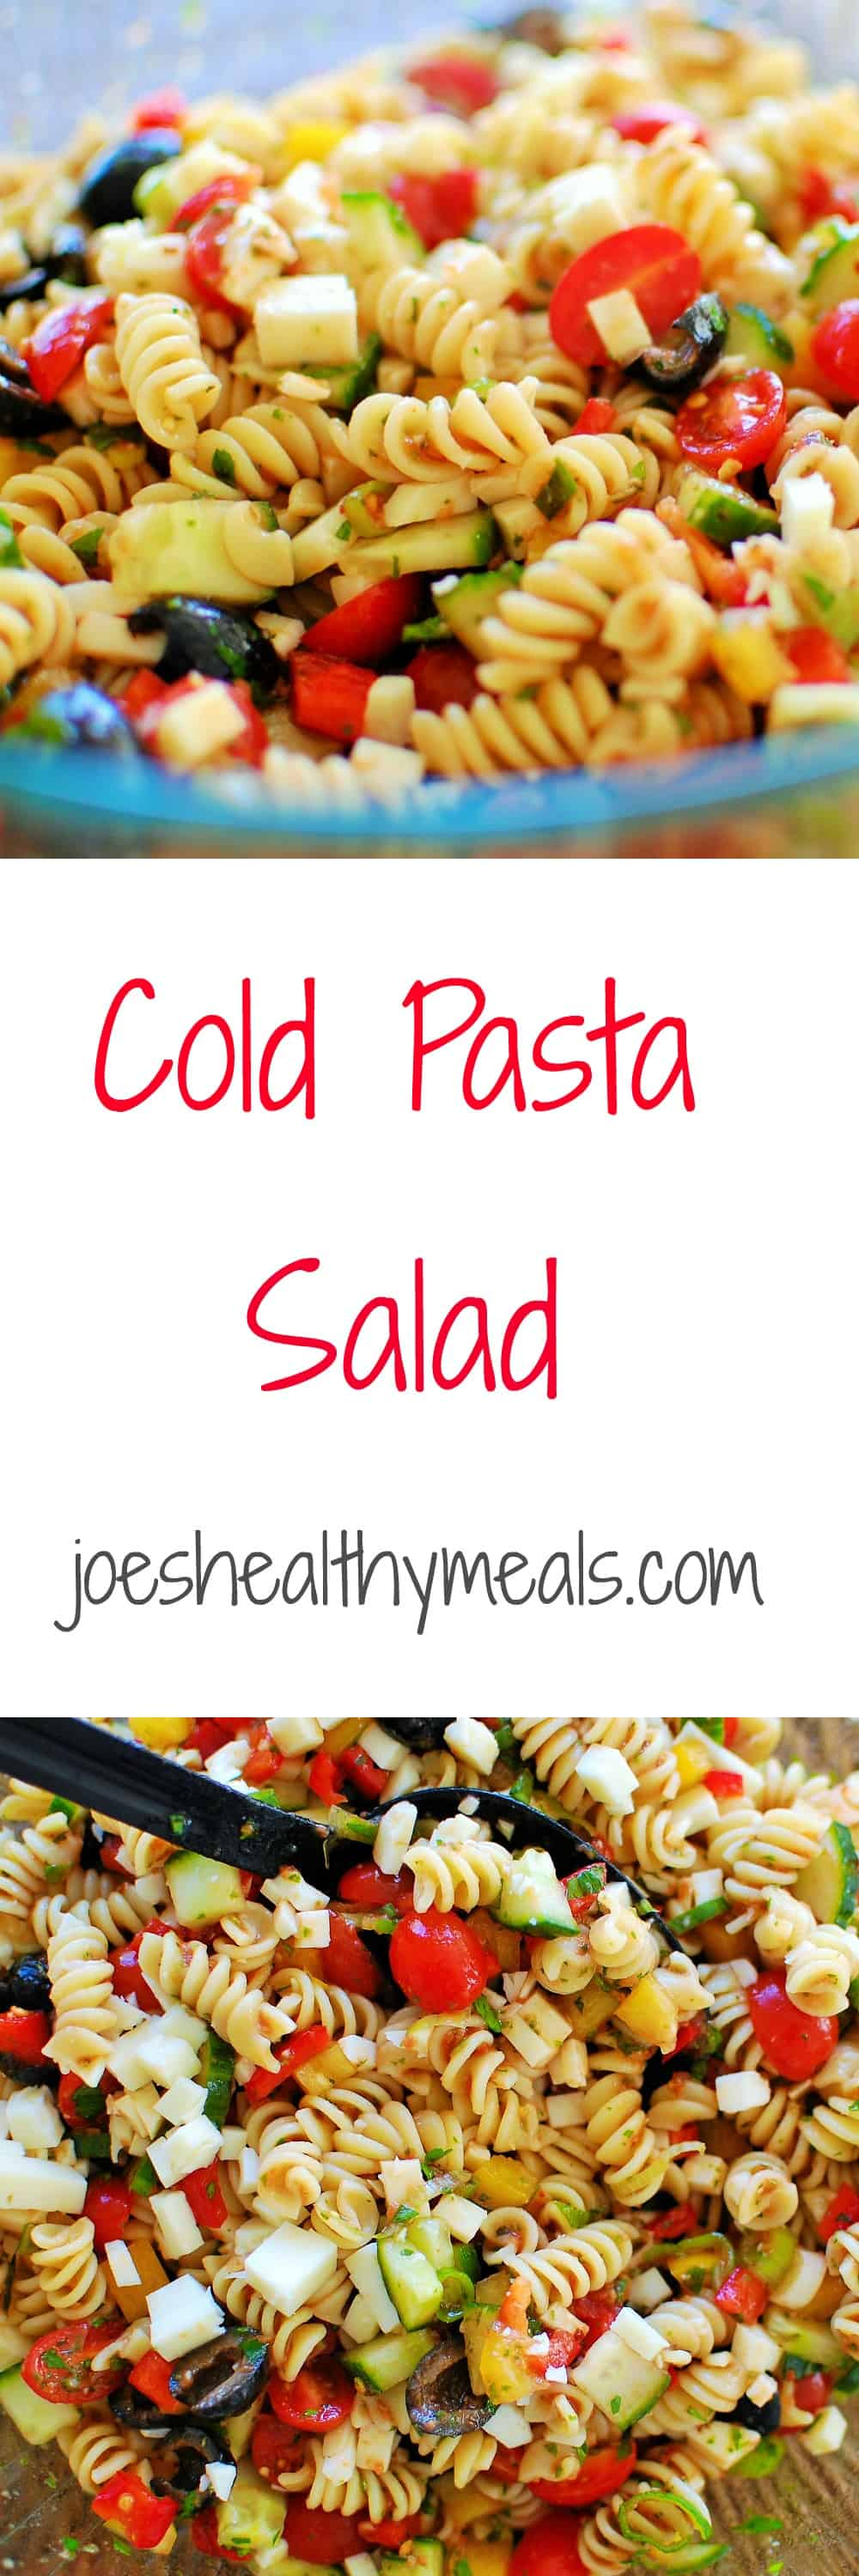 Cold Pasta Salad Joe S Healthy Meals